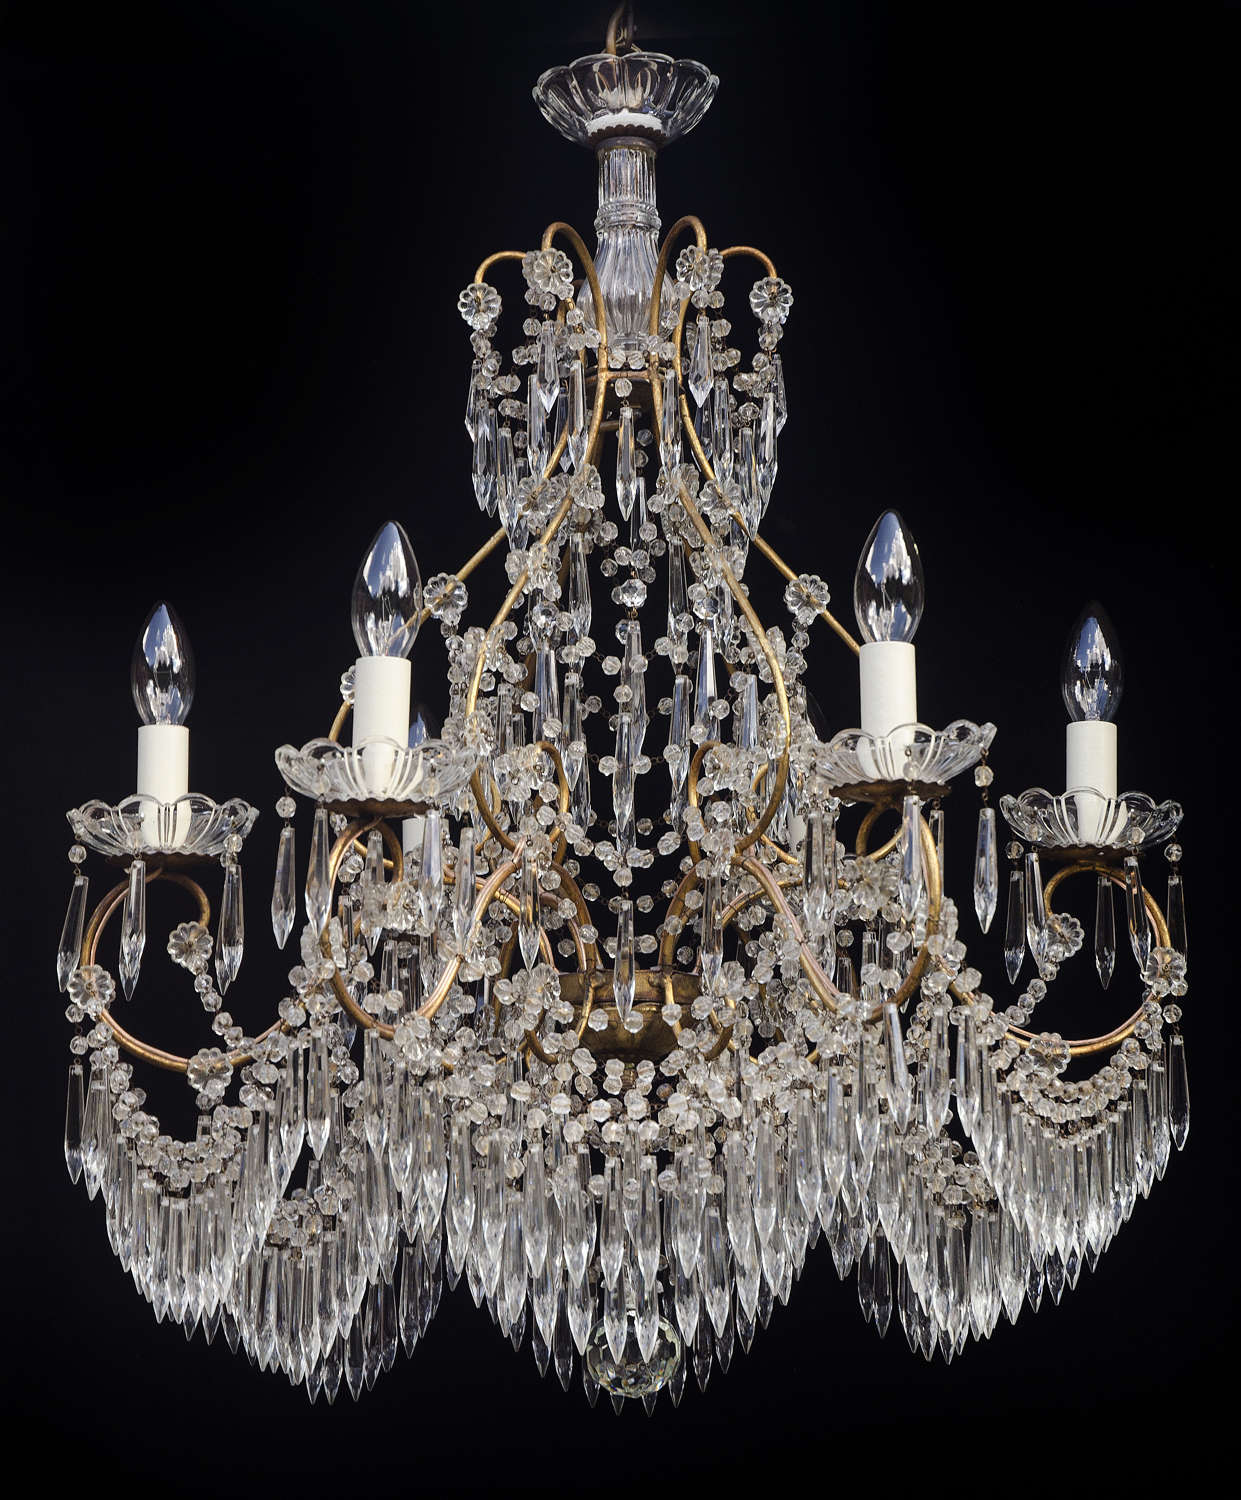 6 light Italian Antique Chandelier with drapes of icicle drops